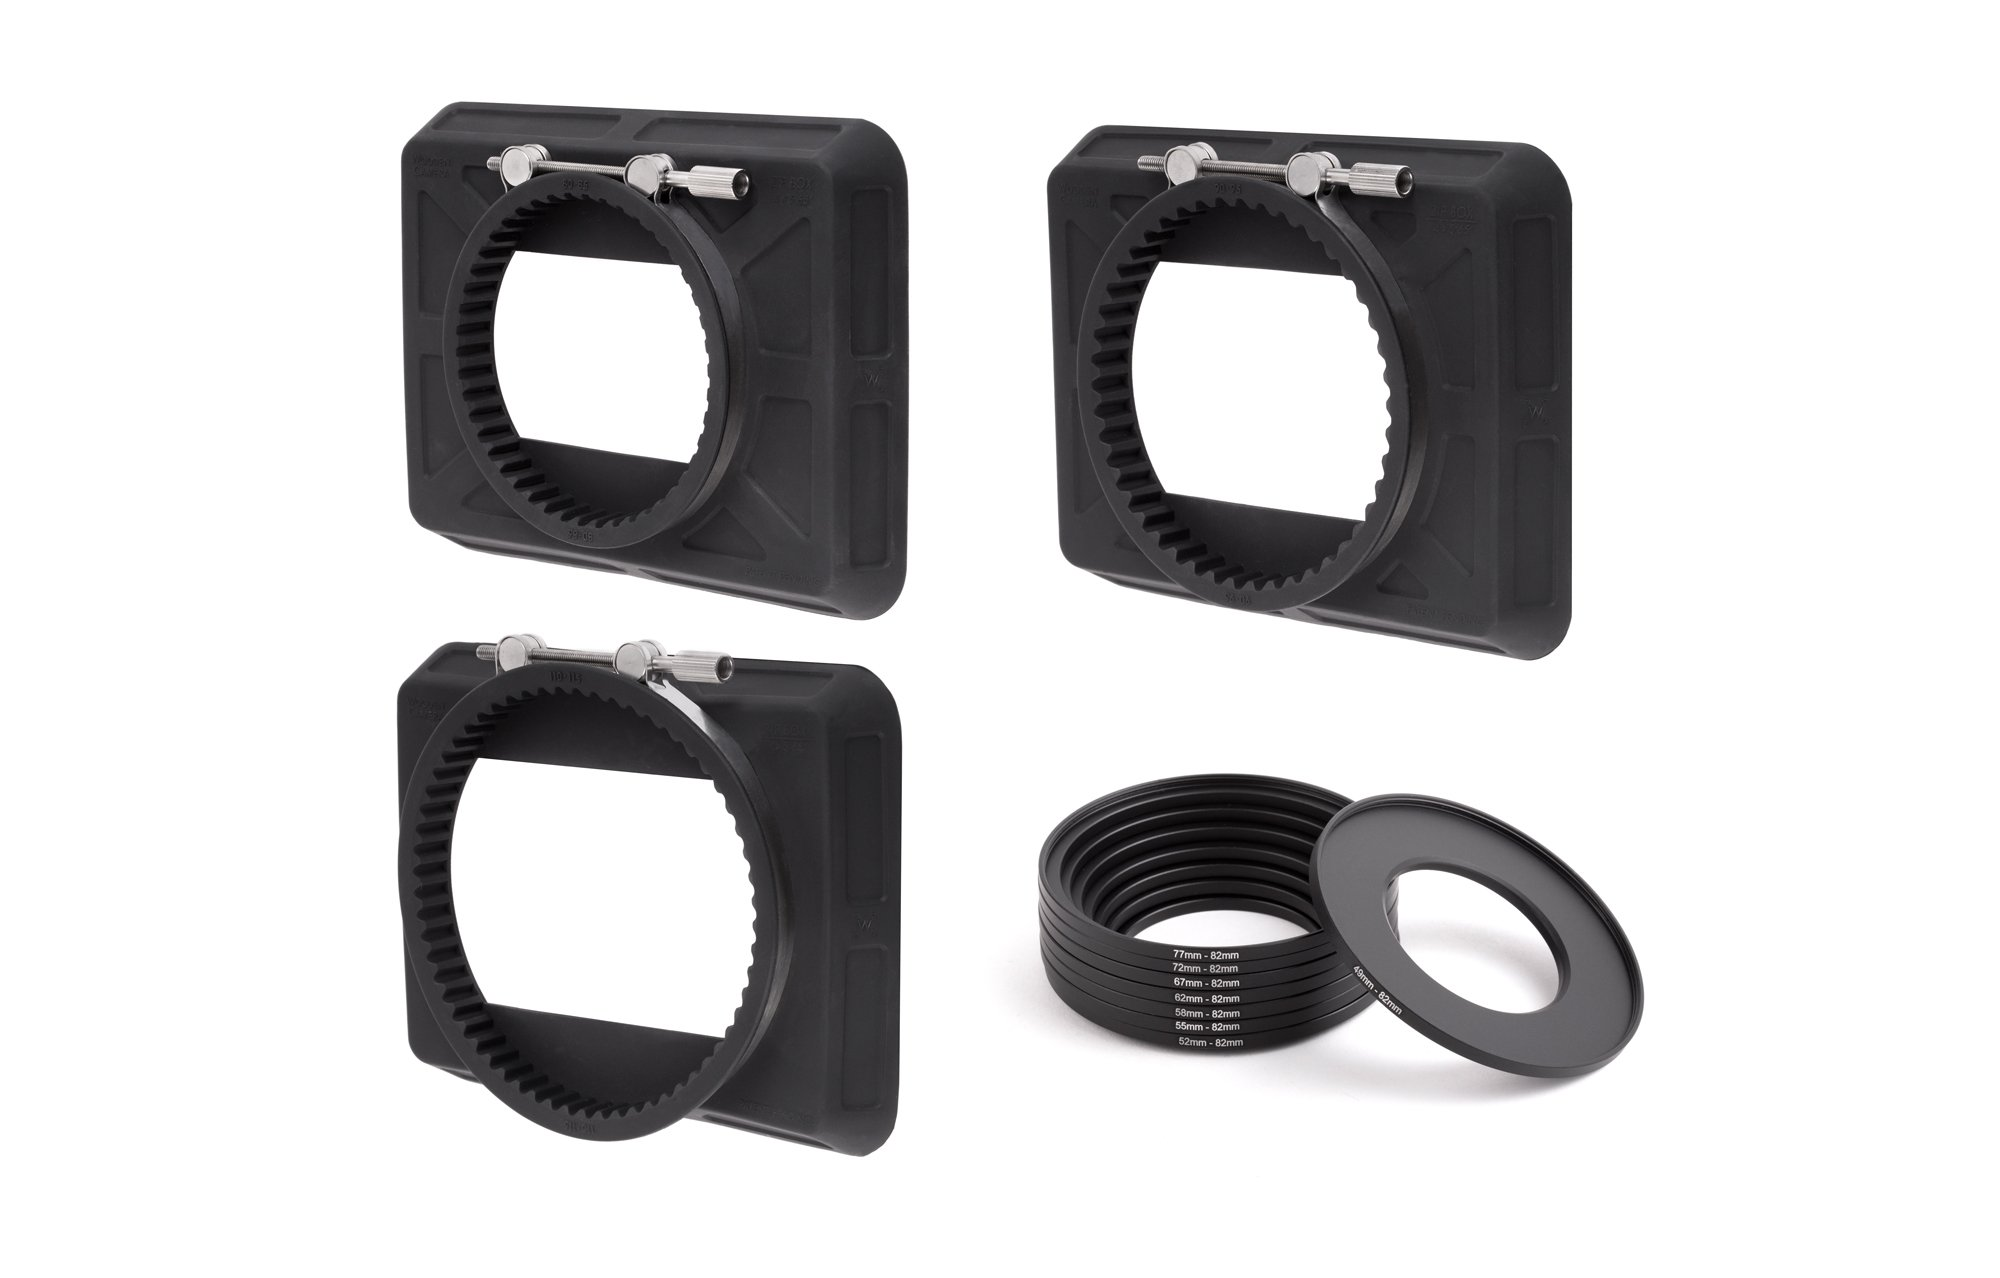 Wooden Camera - Zip Box Kit 4x5.65 (80-85mm, 90-95mm, 110-115mm, Adapter Rings)